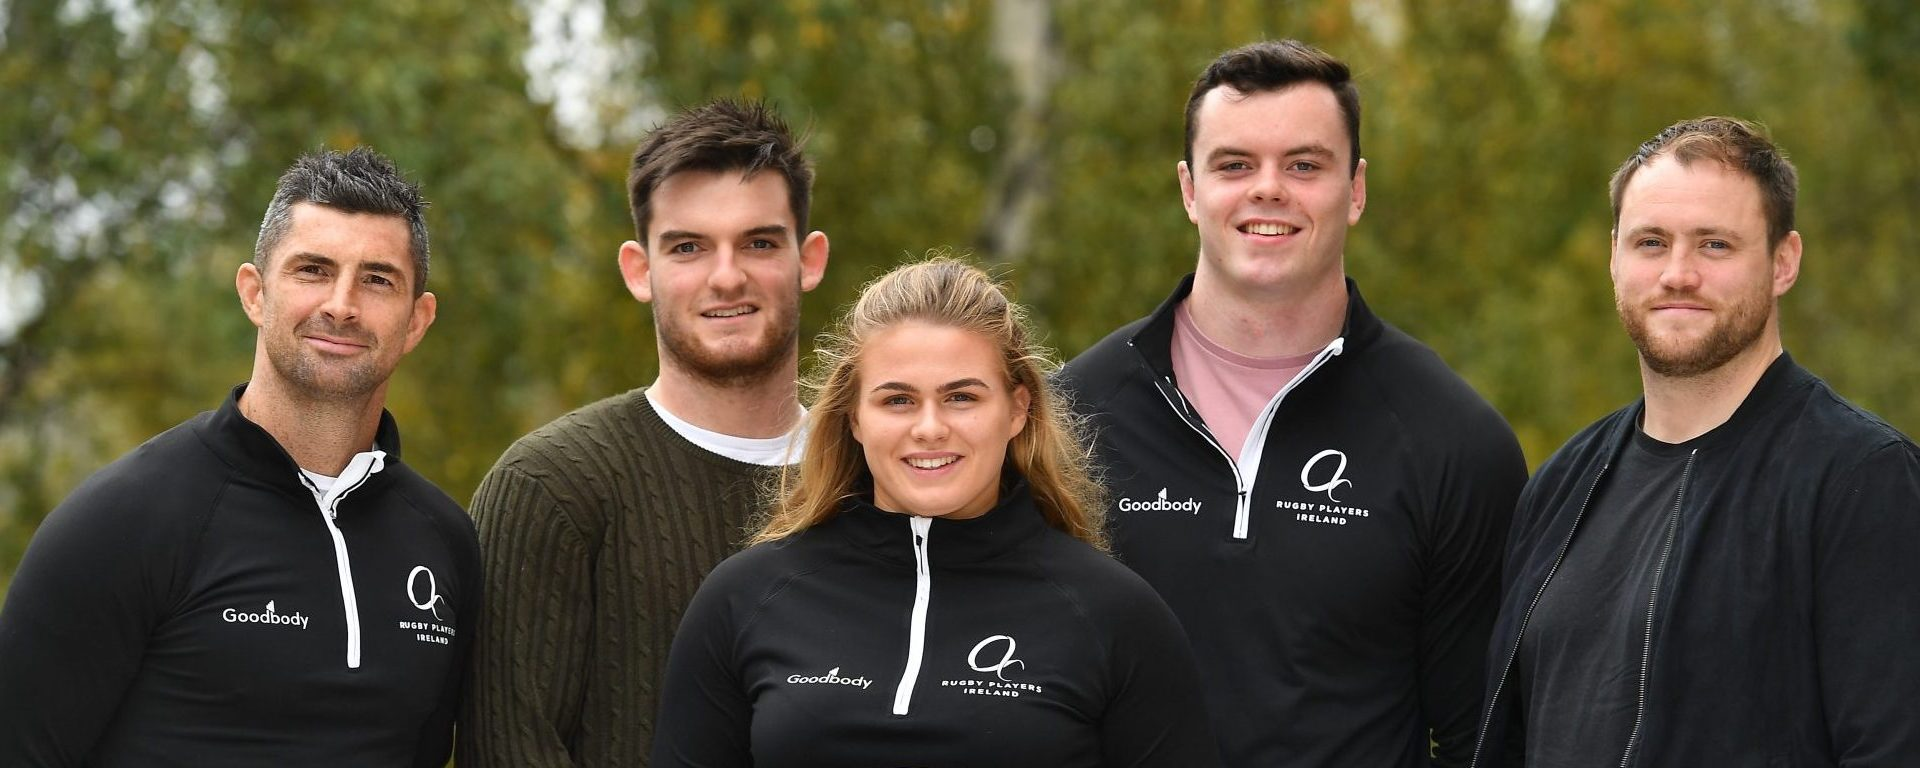 GOODBODY AND RUGBY PLAYERS IRELAND ANNOUNCE NEW PARTNERSHIP